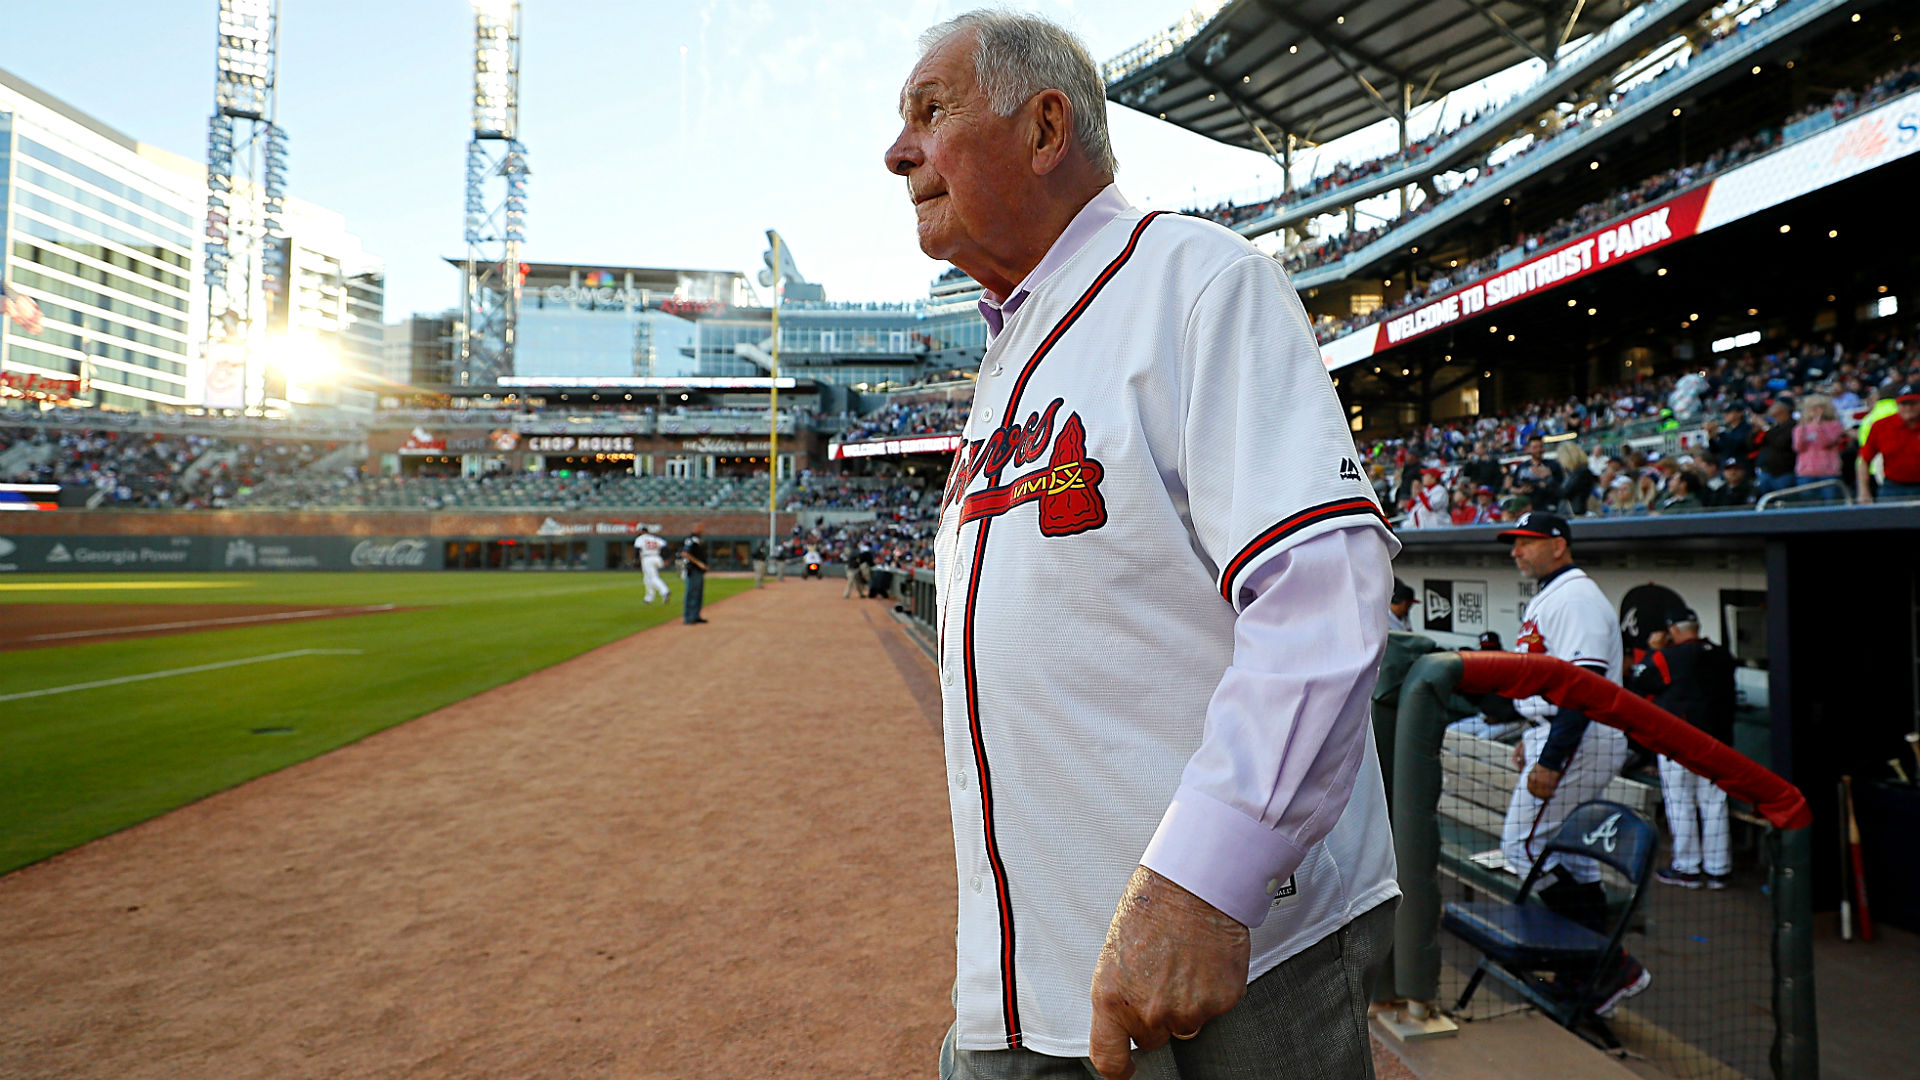 Former Braves manager Bobby Cox hospitalized